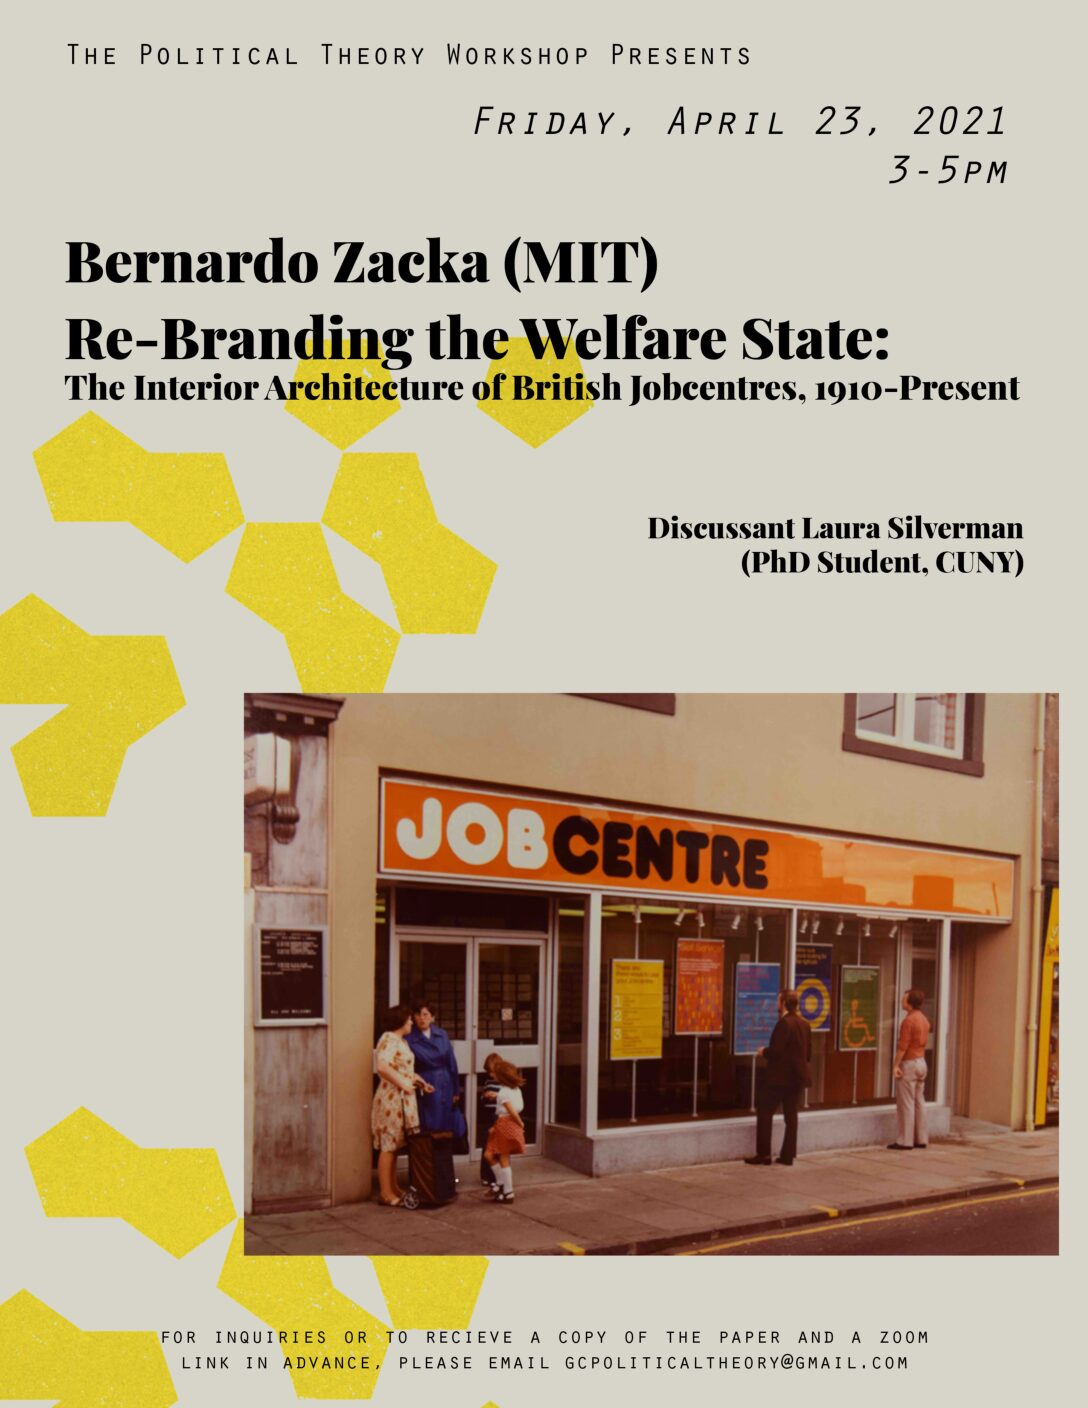 """Political Theory Workshop, Bernardo Zacka, """"Re-Branding the Welfare State: The Interior Architecture of British Jobcentres, 1910-Present,"""" Friday, April 23, 3:00-5:00pm"""